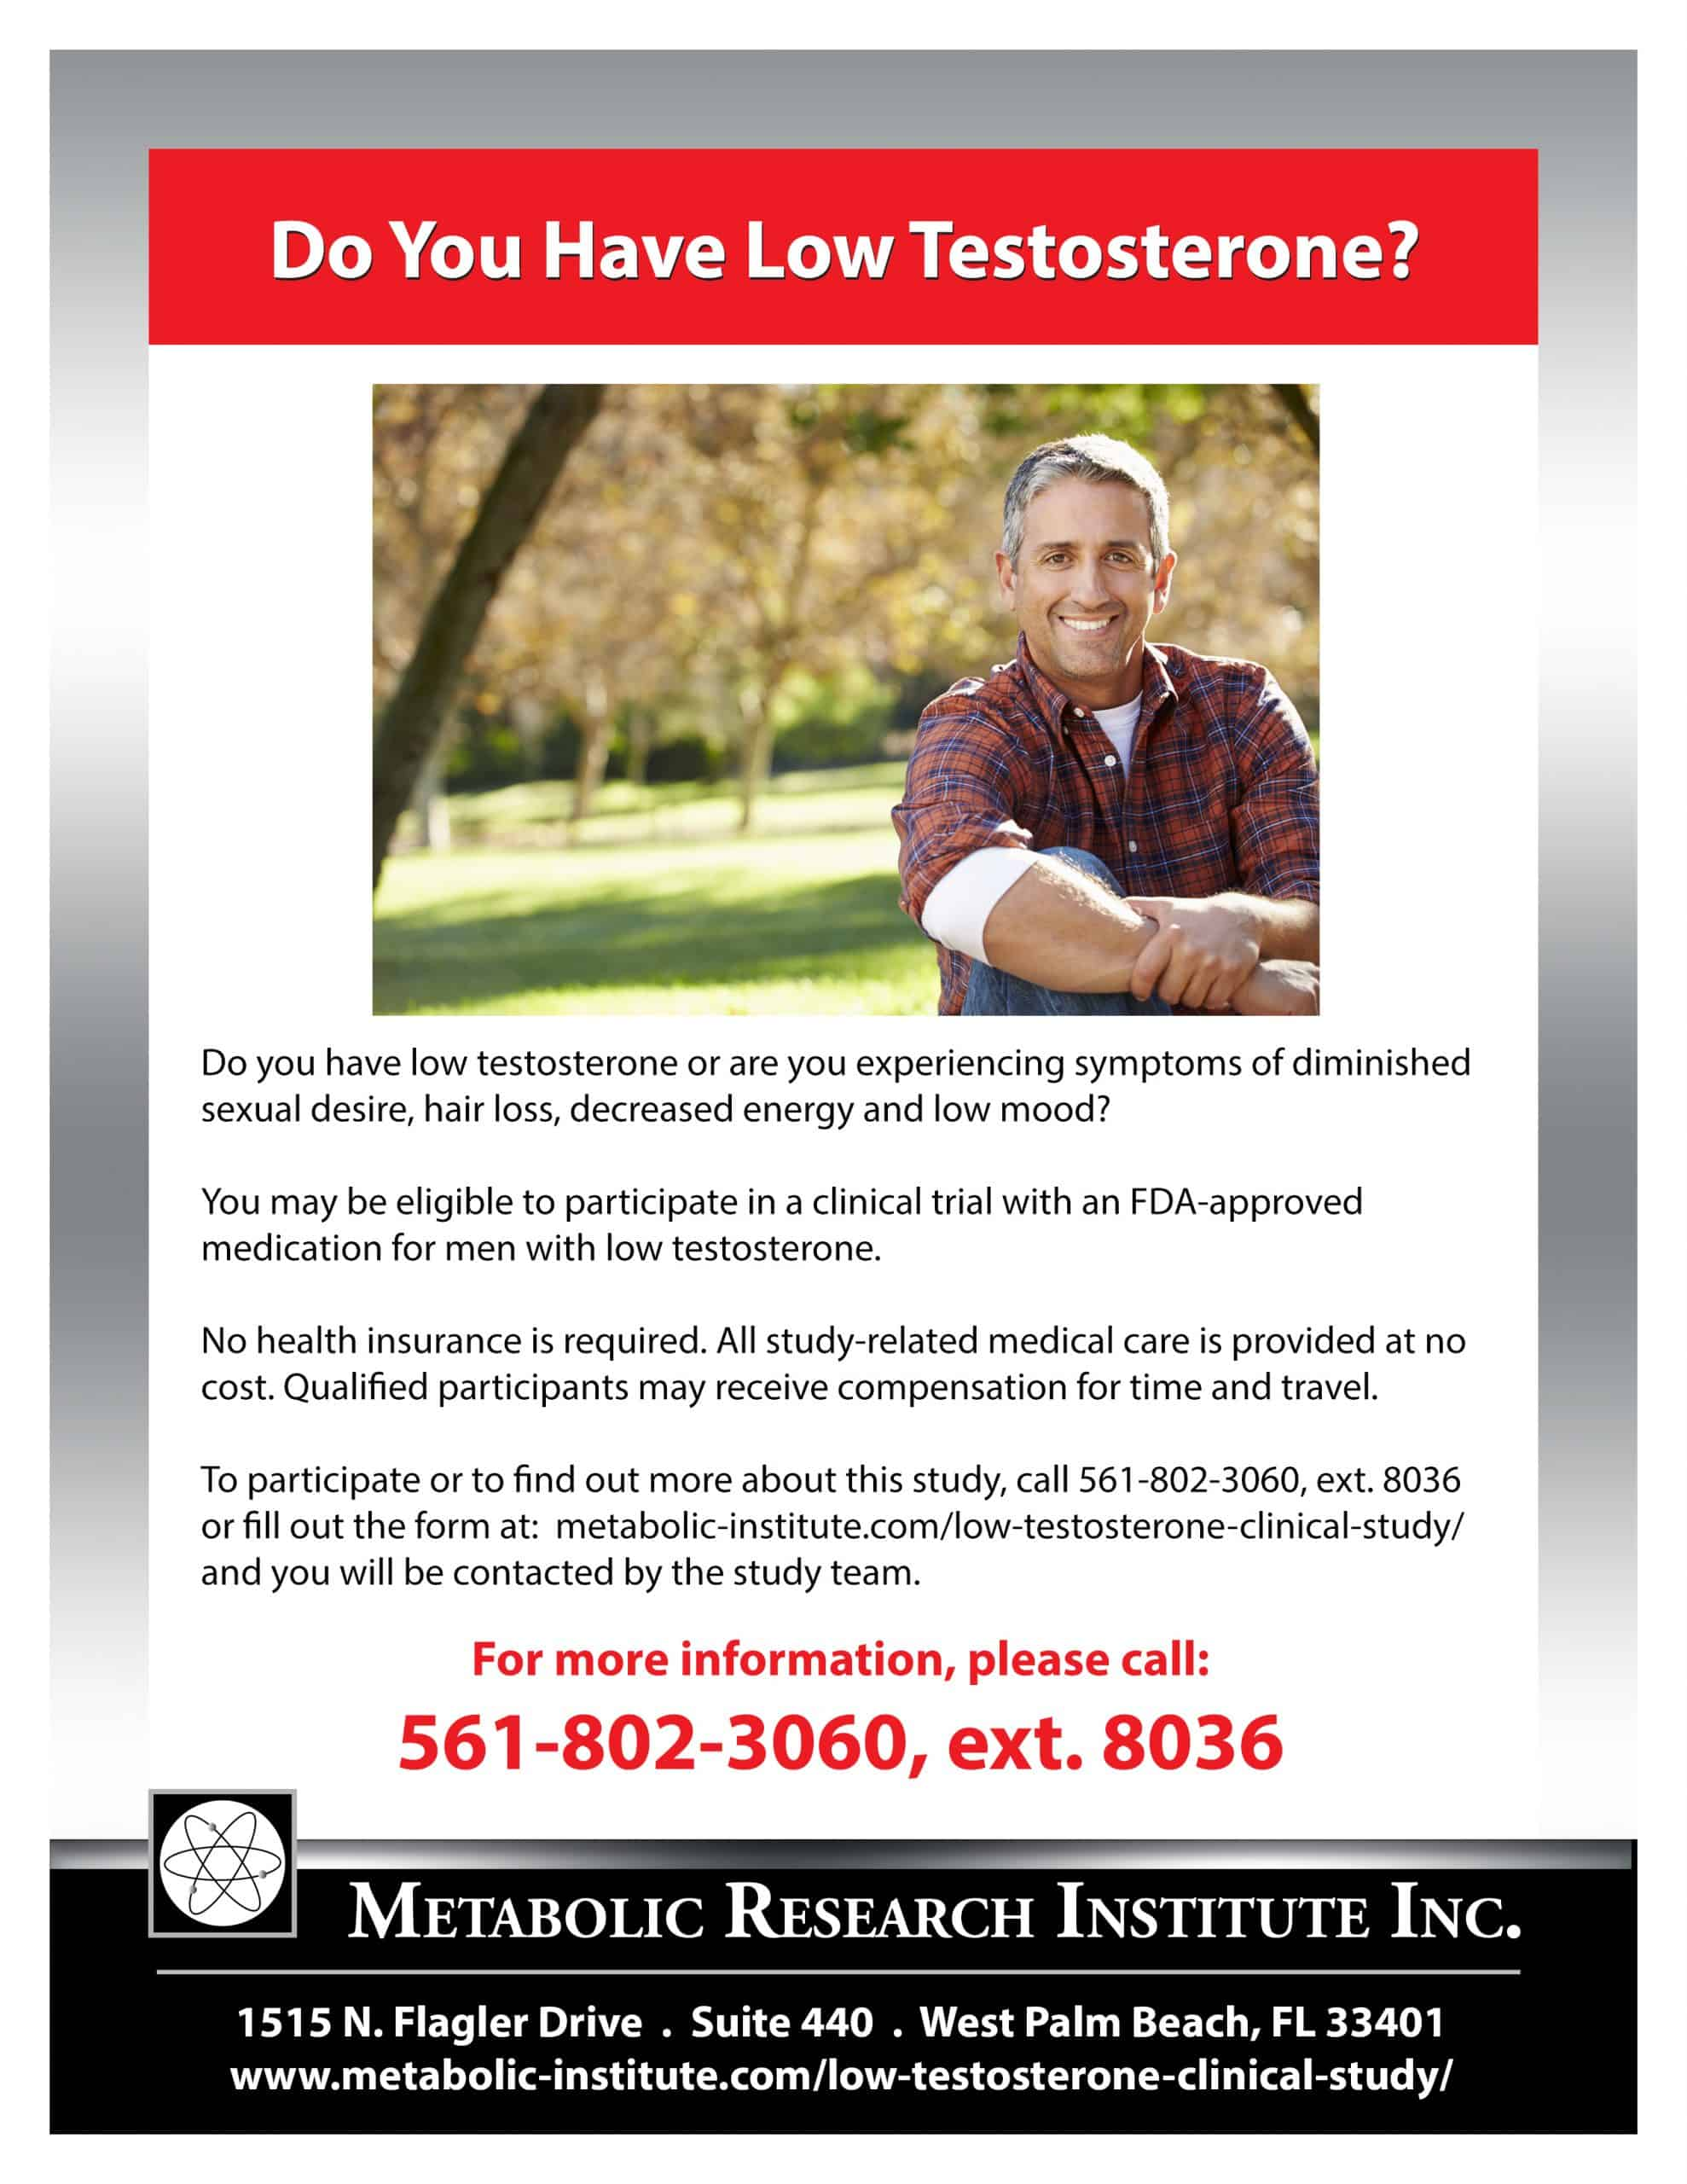 Low Testosterone Clinical Research Study in West Palm Beach FL